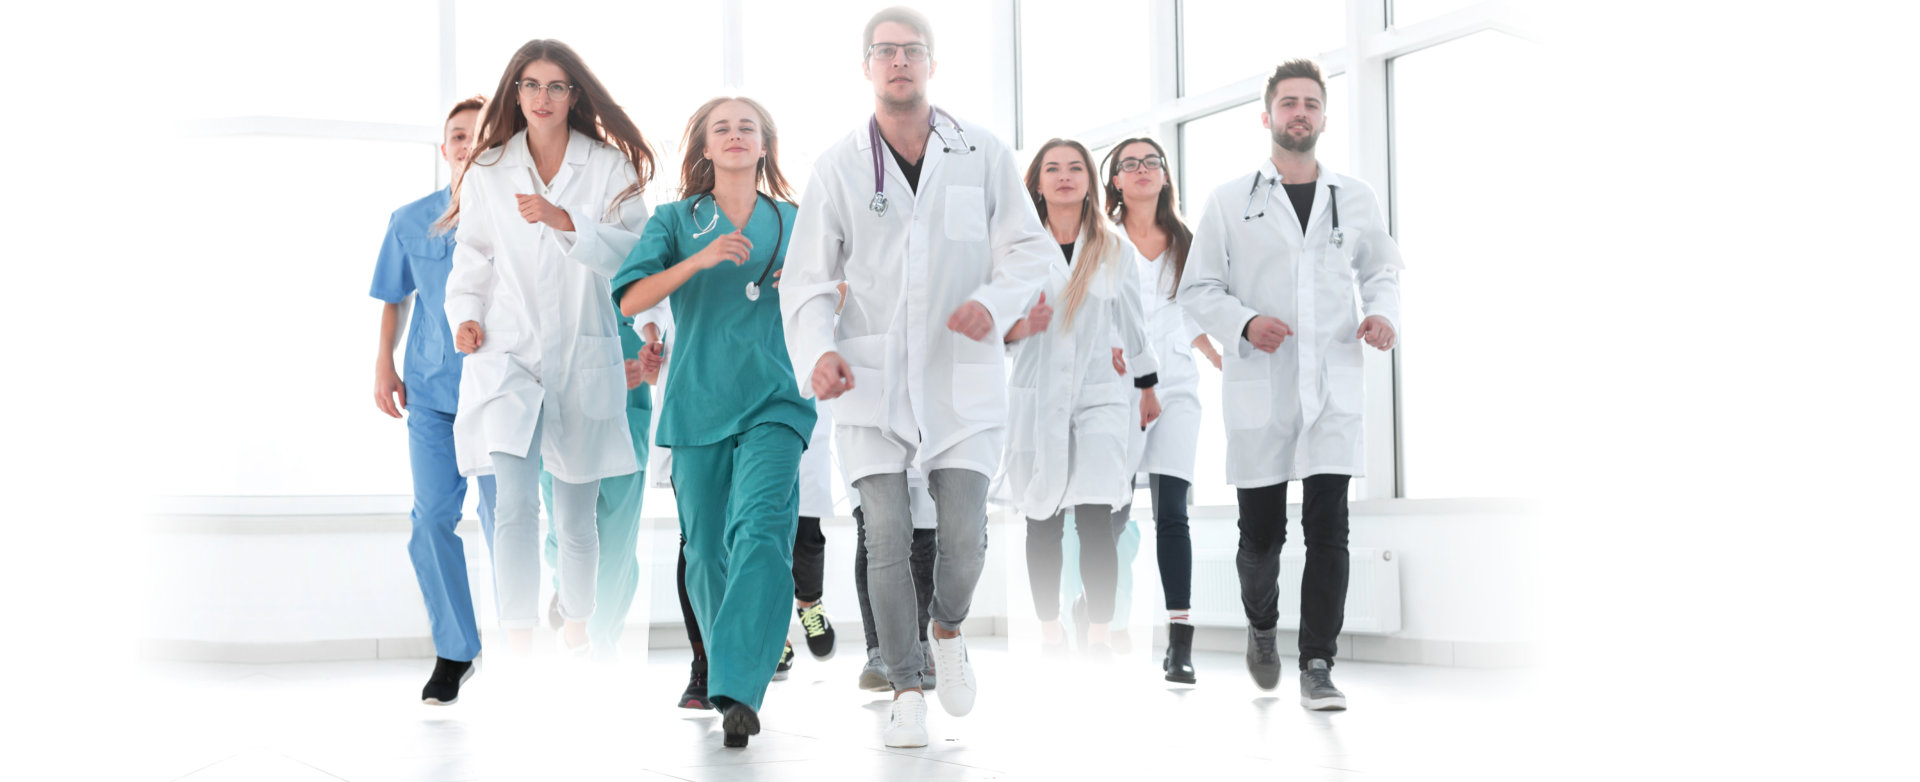 doctors and nursing rushing to somewhere